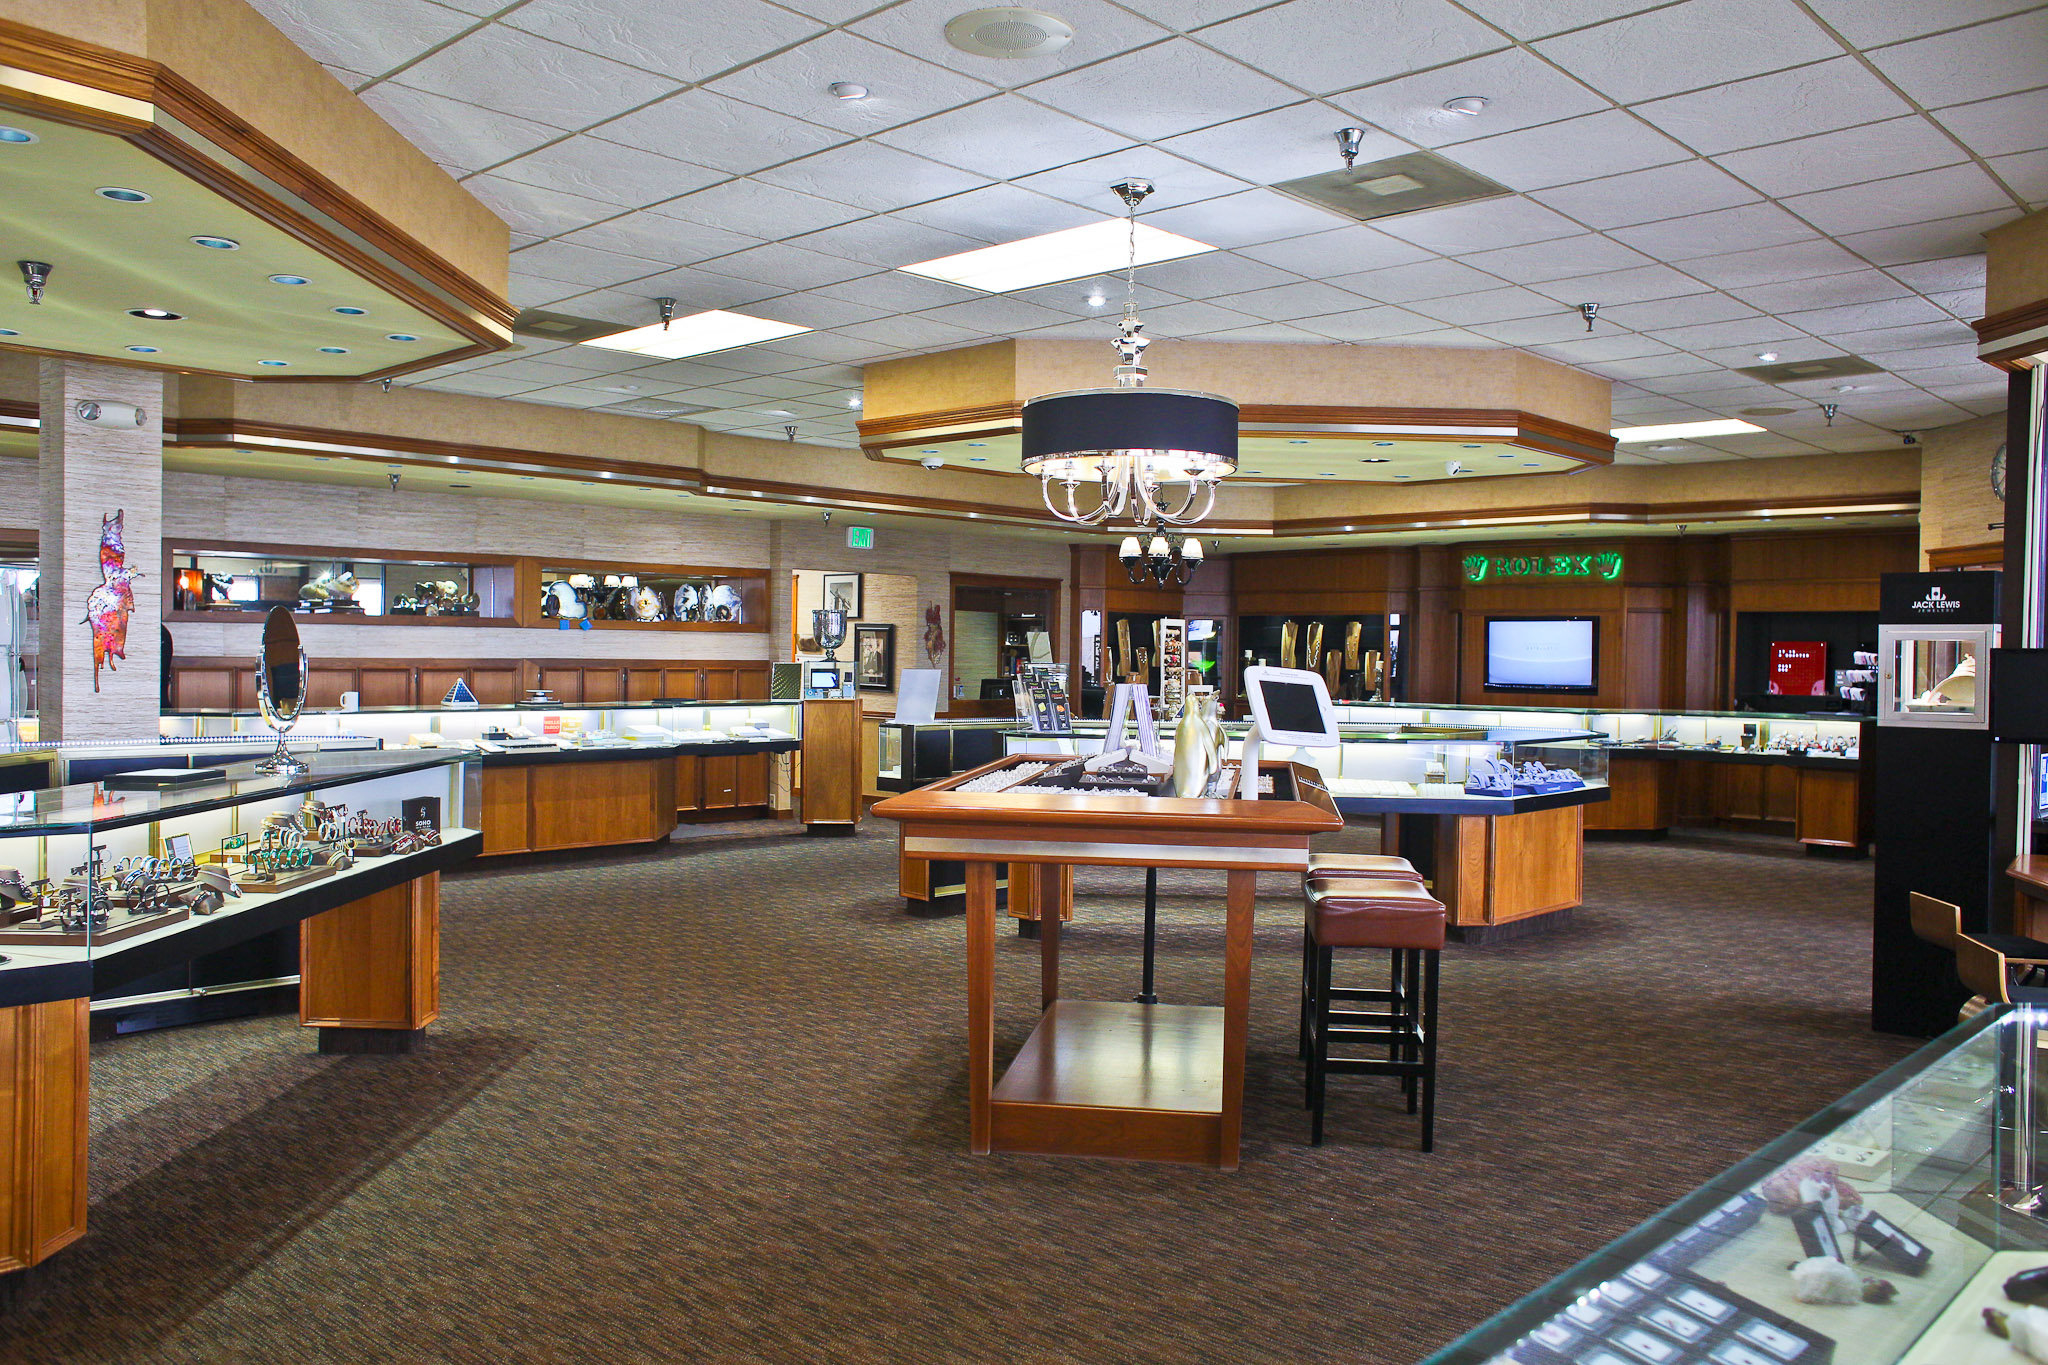 jack lewis jewelers coupons near me in bloomington 8coupons On jewelry stores in bloomington normal il